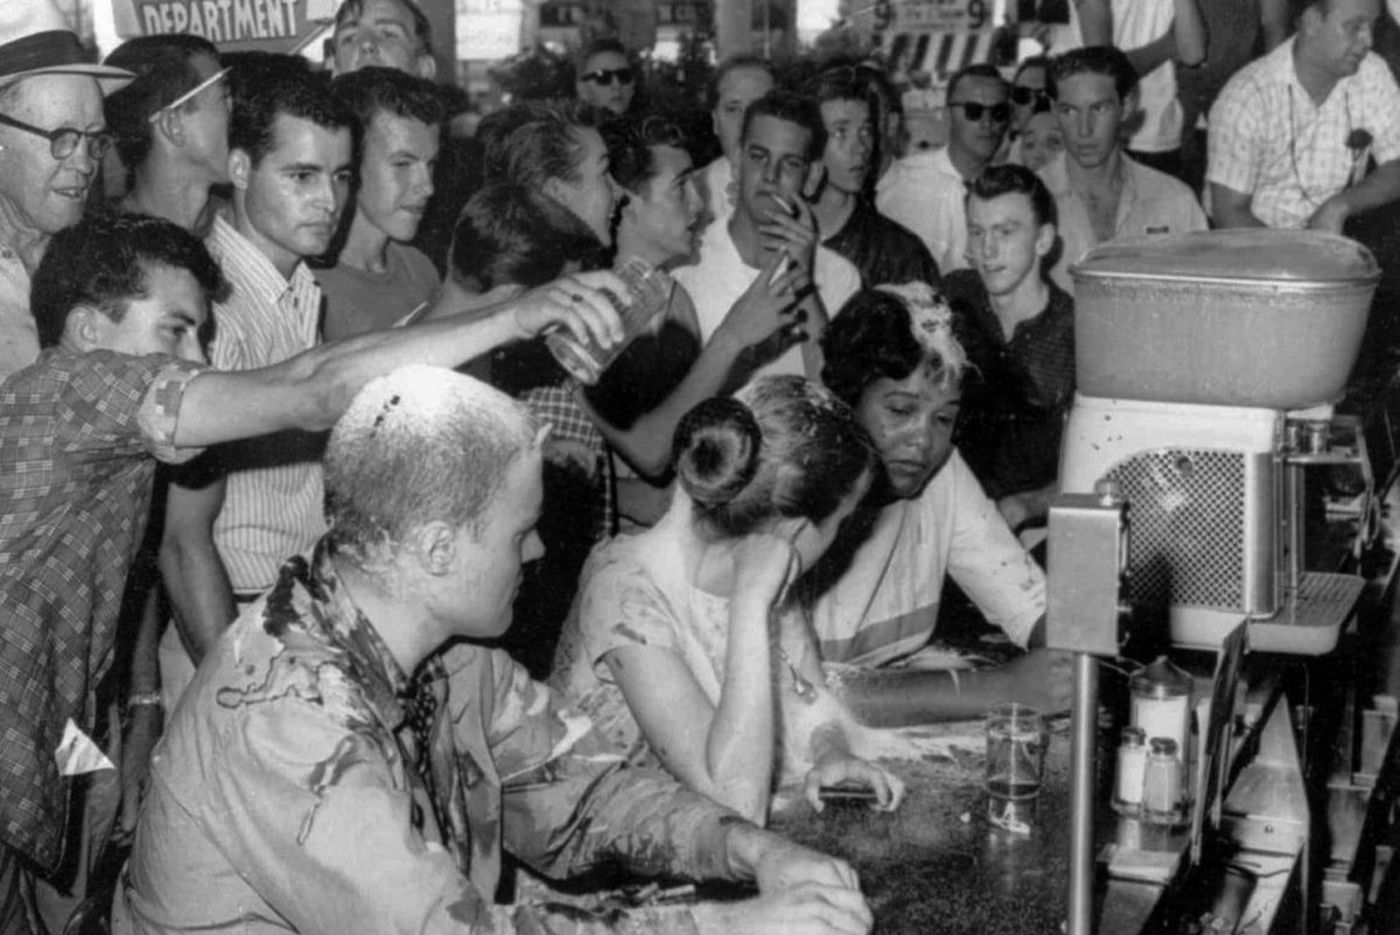 Before video of a Starbucks arrest, images of lunch counter sit-ins helped launch a movement